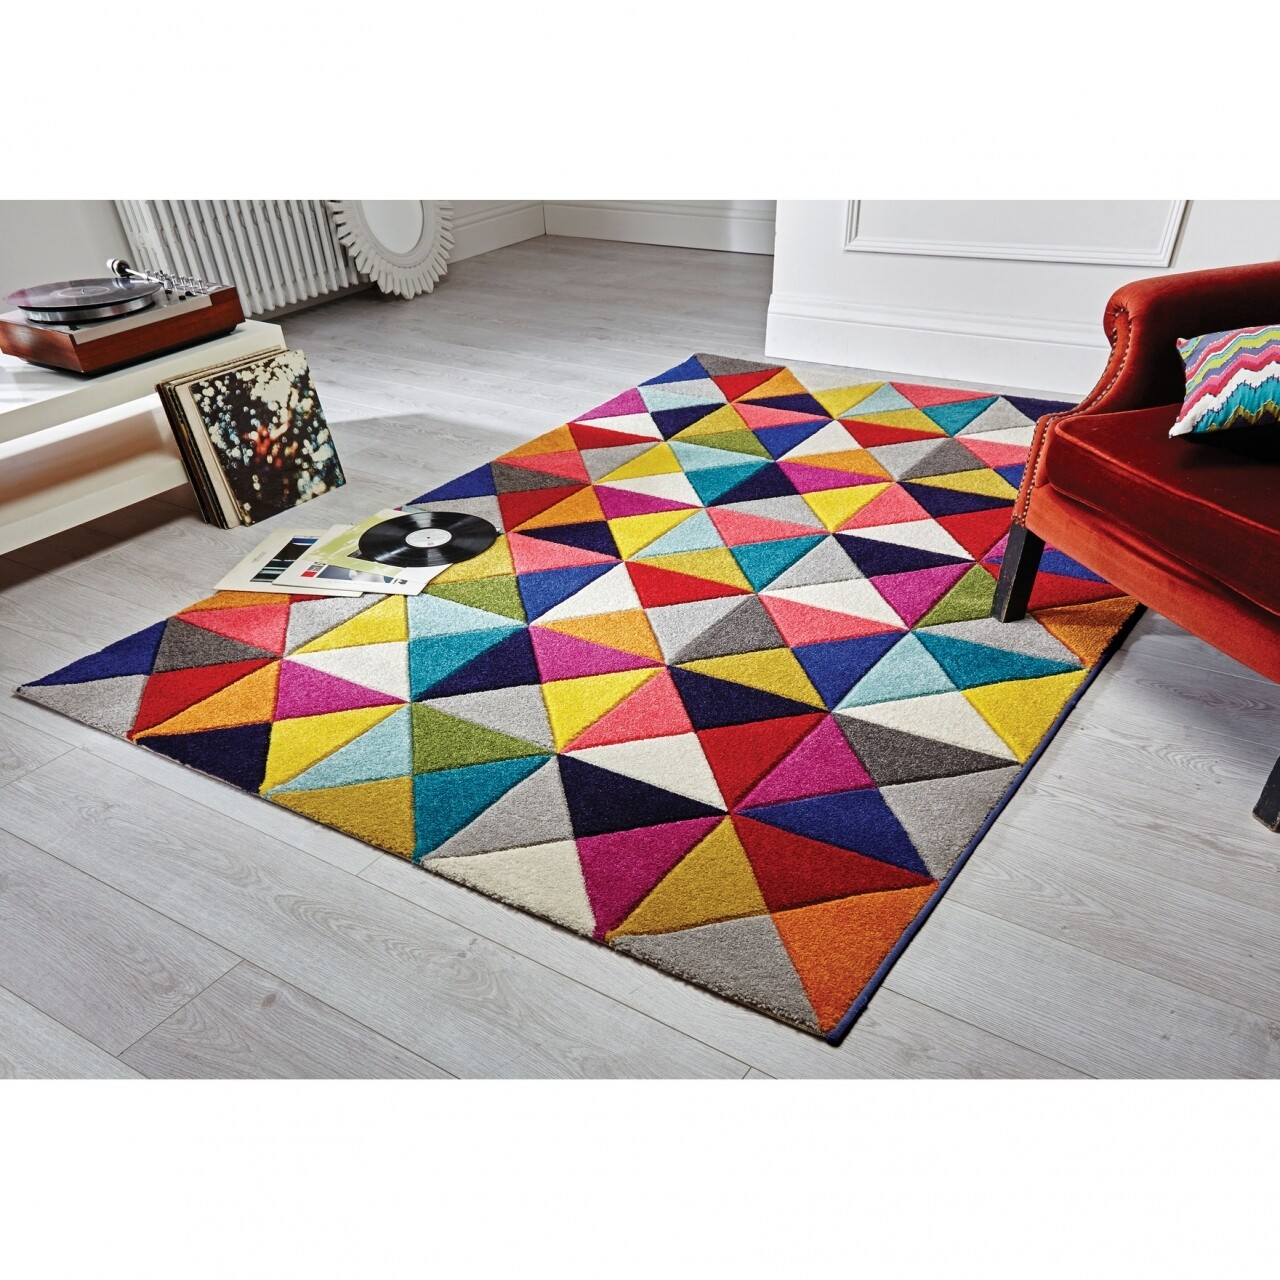 Covor Spectrum Samba Multi, Flair Rugs, 160 x 230 cm, 100% polipropilena, multicolor